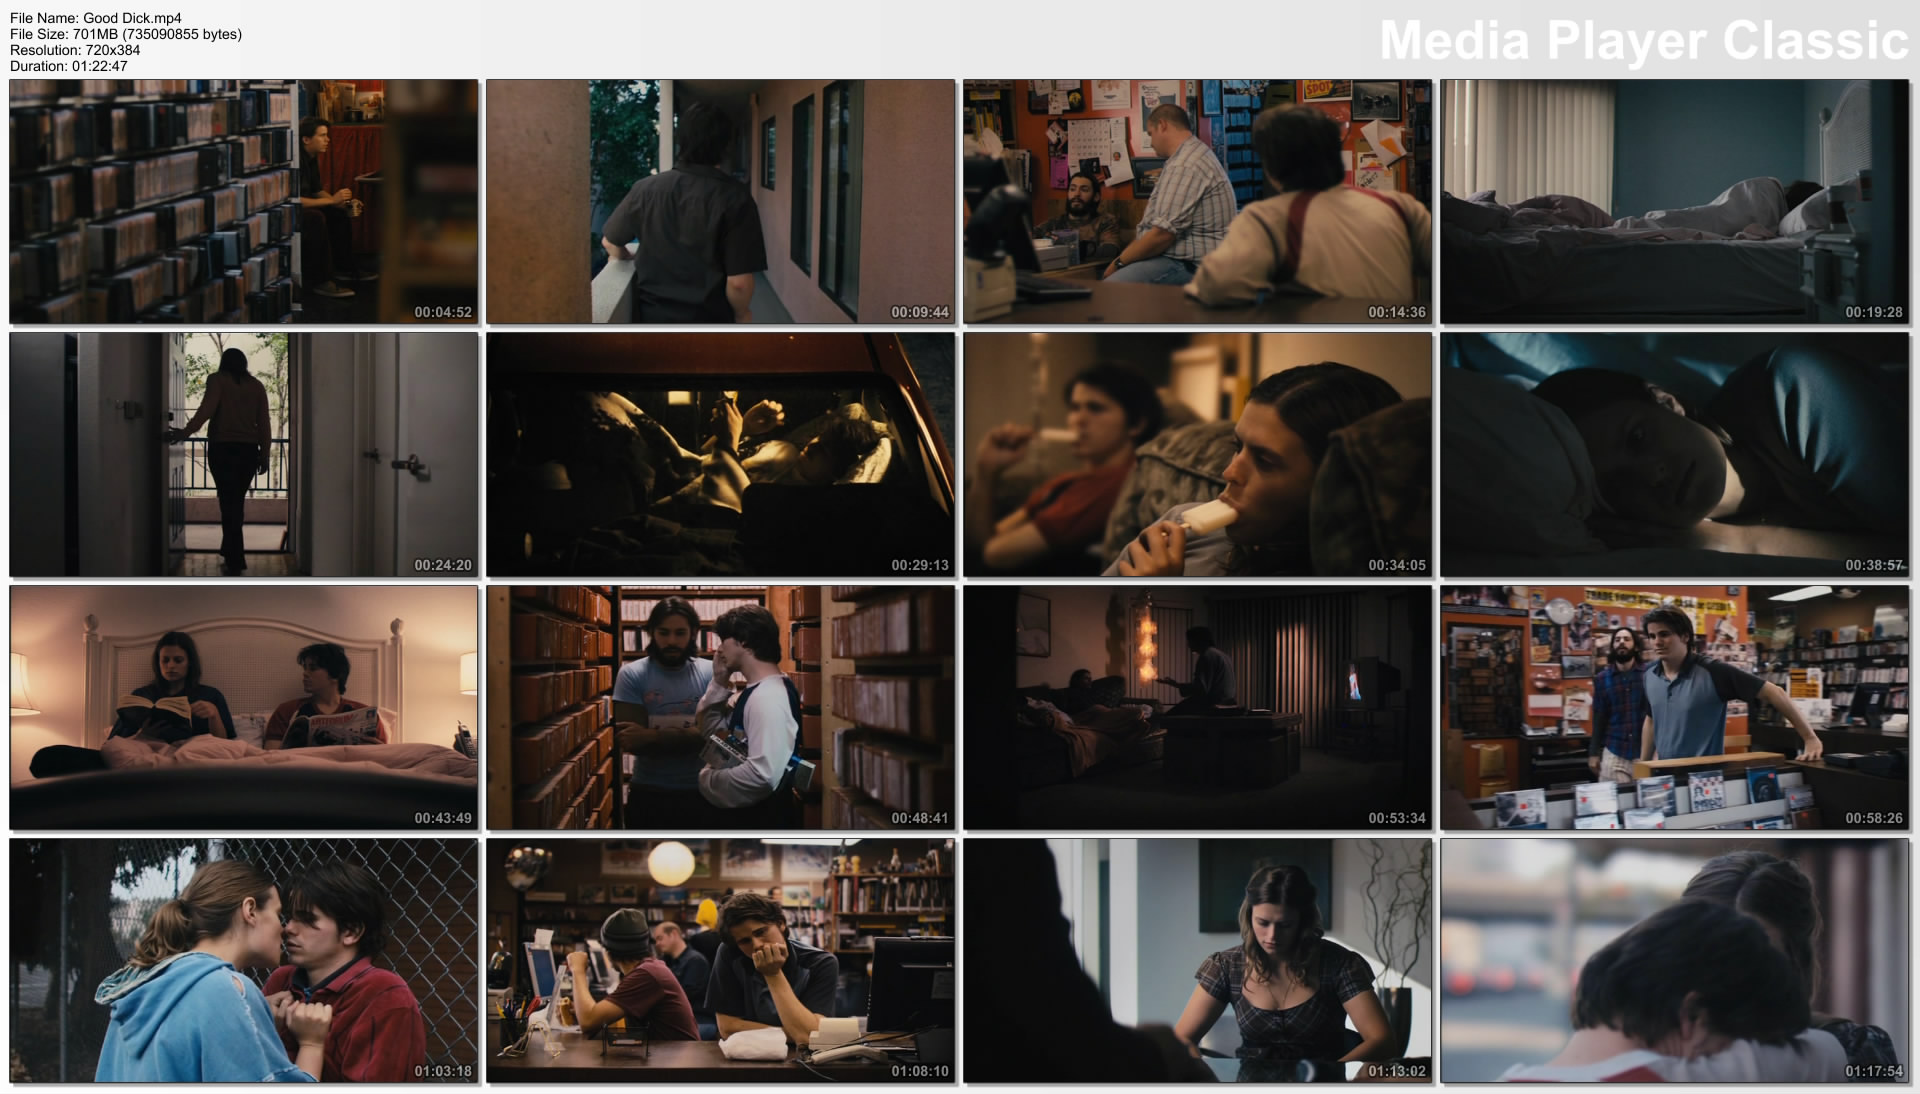 Good Dick 2008 DVDRip H264 AAC SecretMyth (Kingdom Release) preview 1